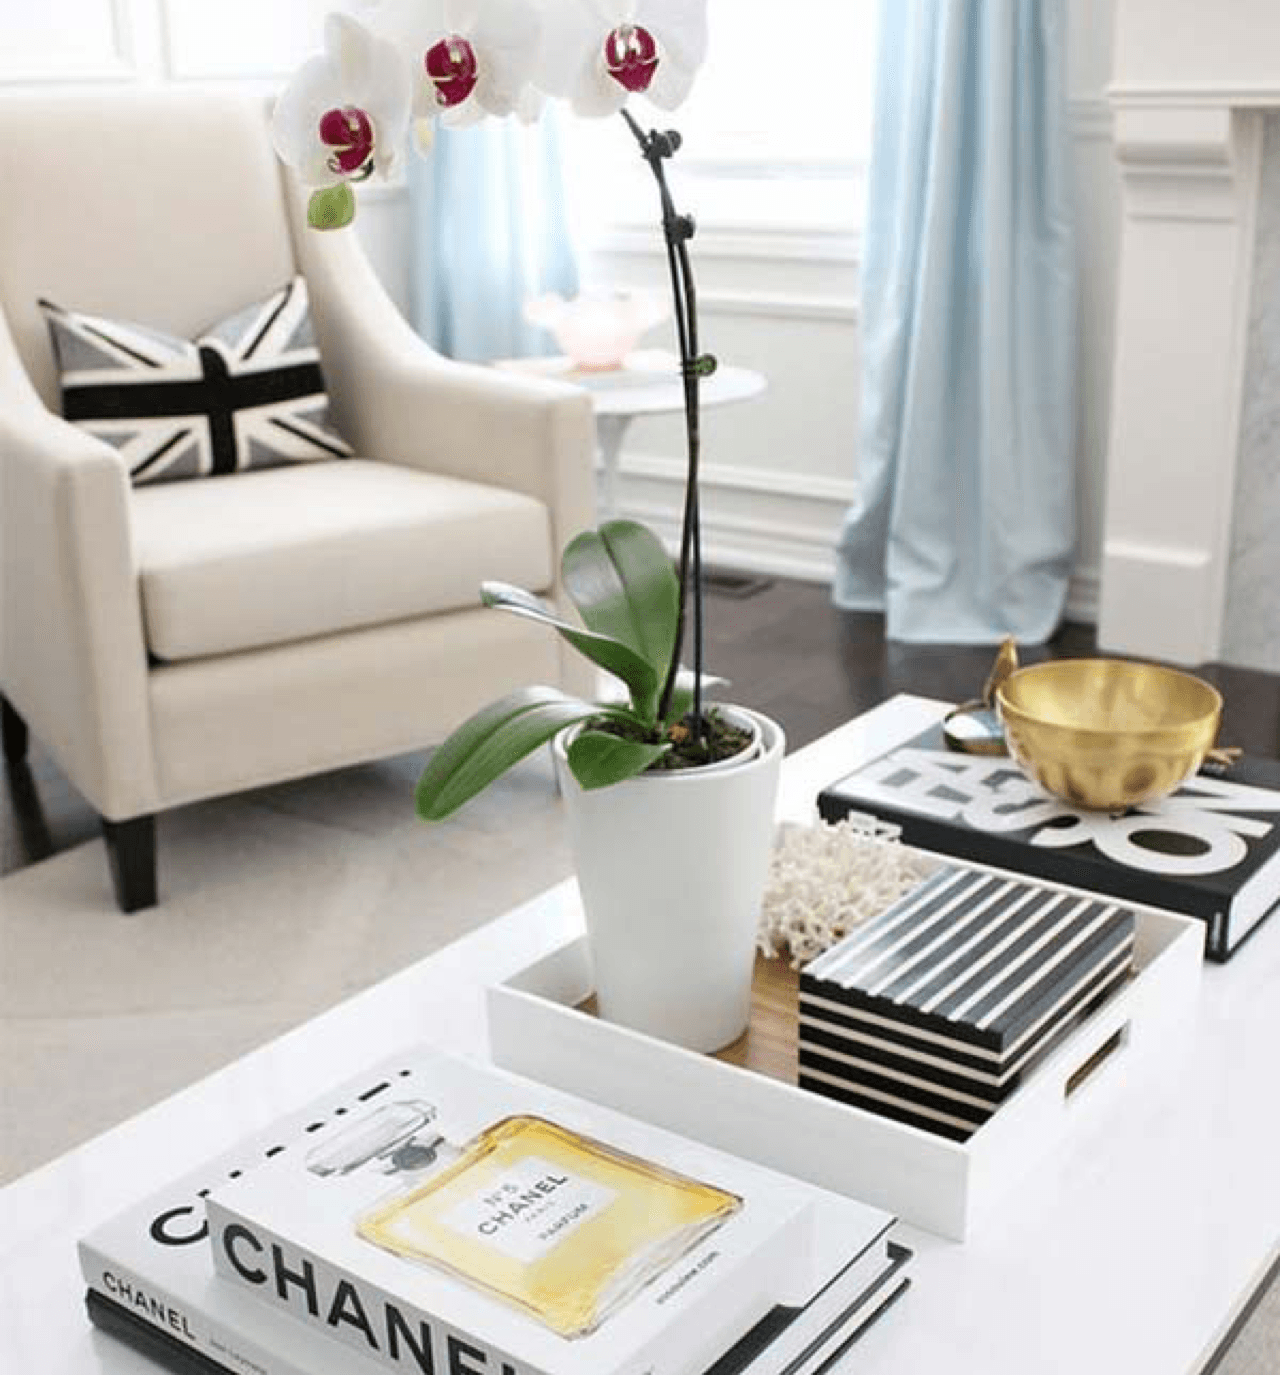 Ideas to Style Your Coffee Table or Ottoman Orchids Image